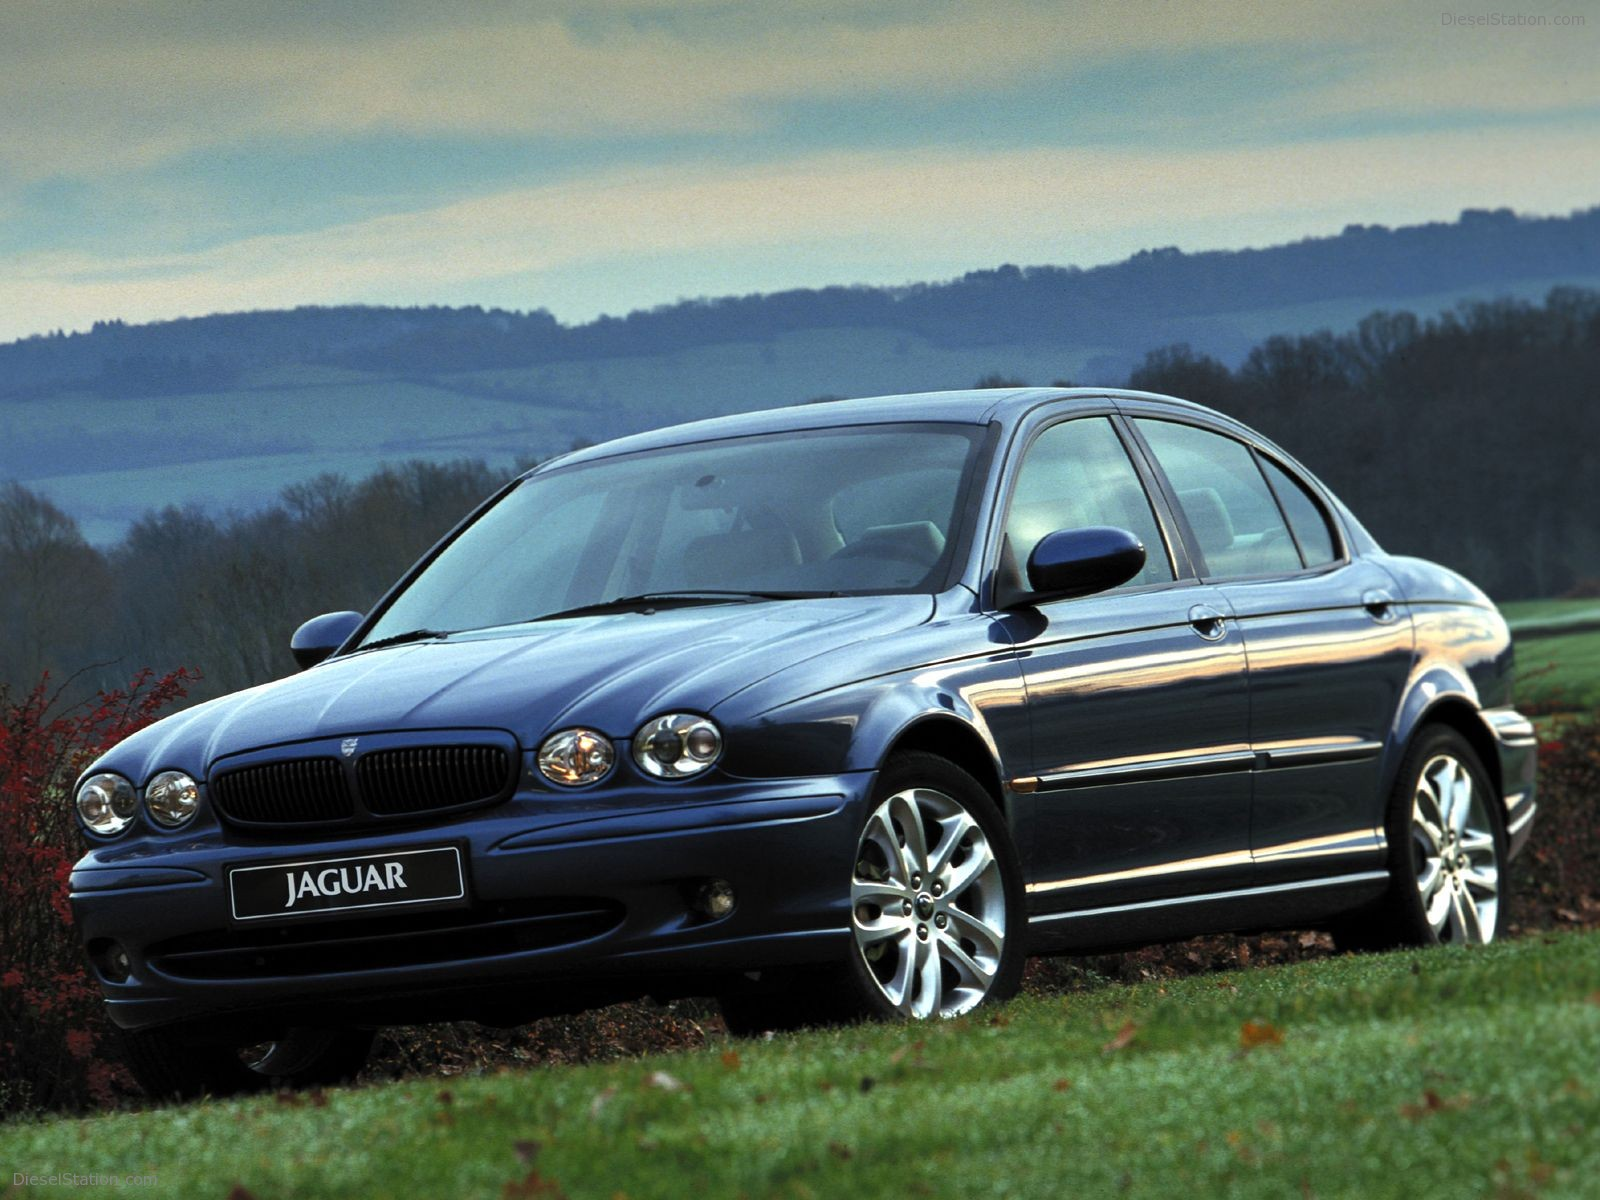 Jaguar x photo - 8